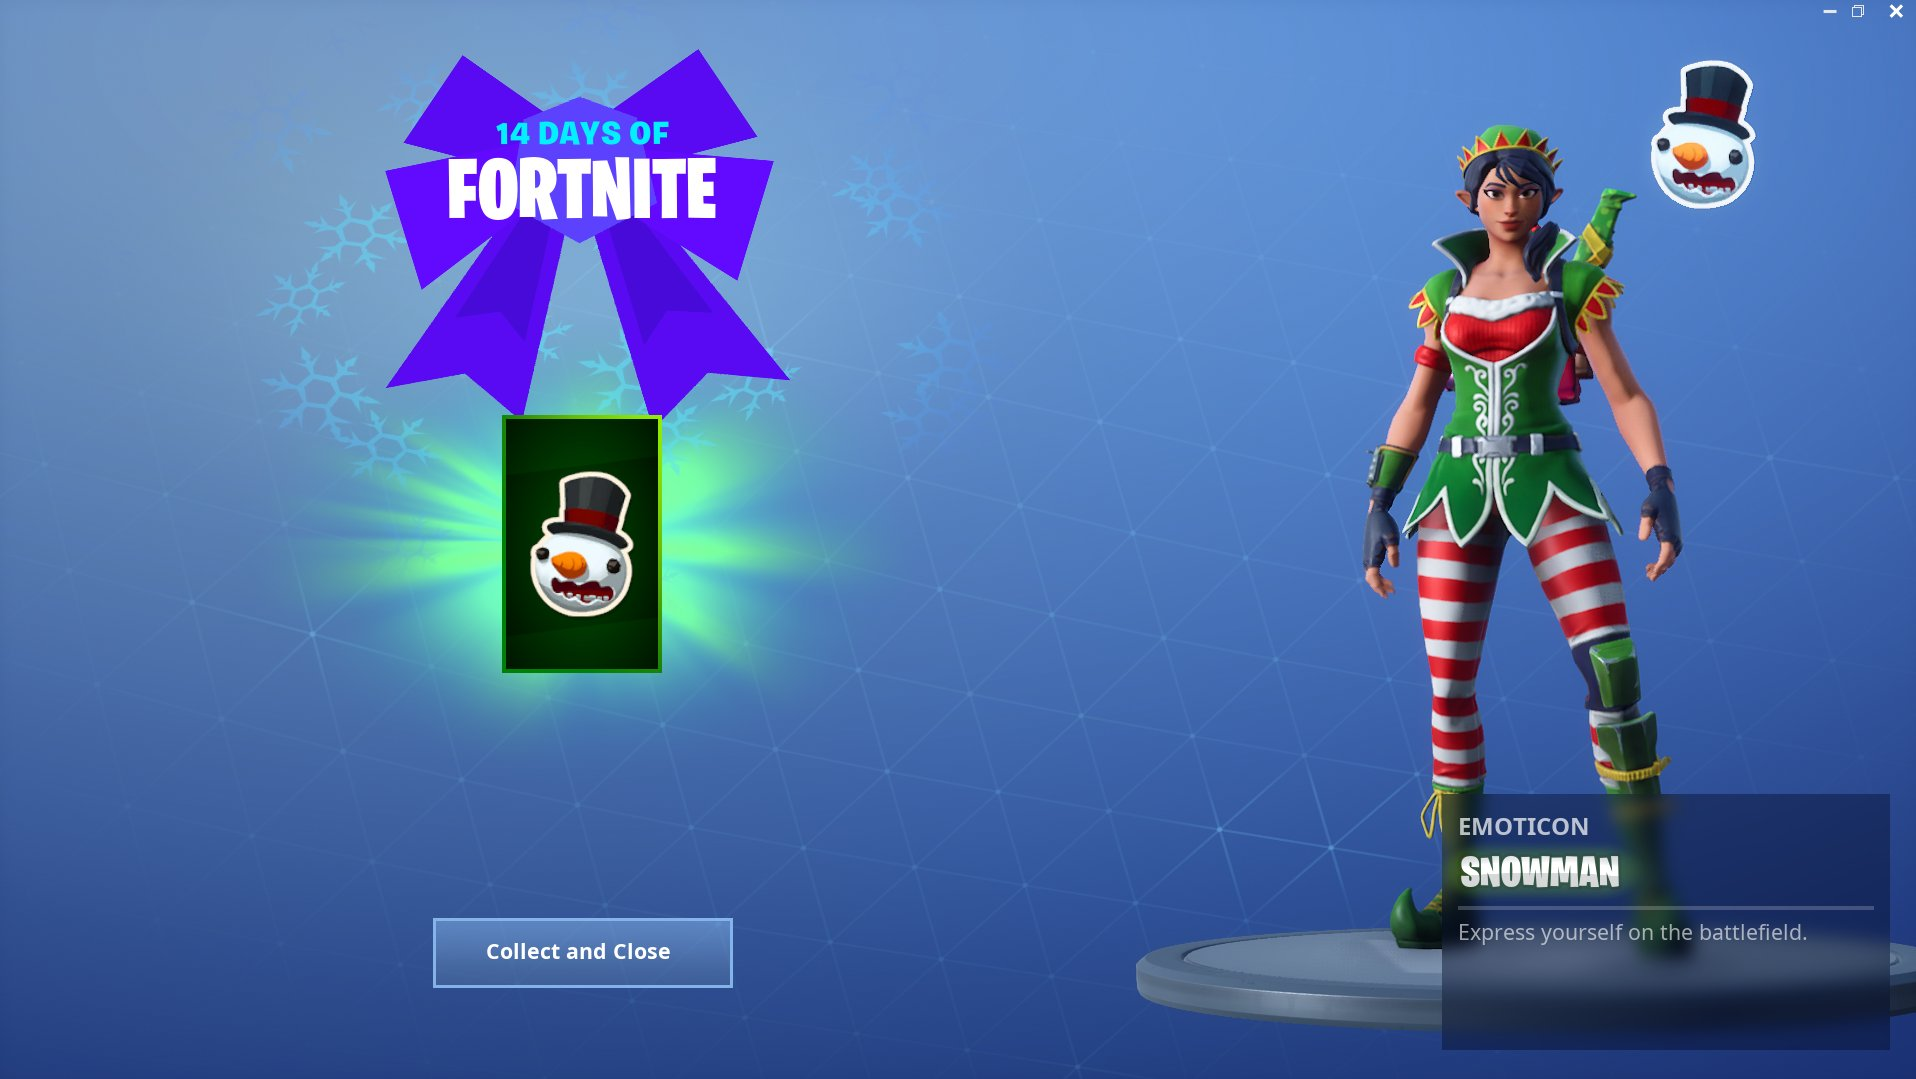 Day 4 Fortnite Reward